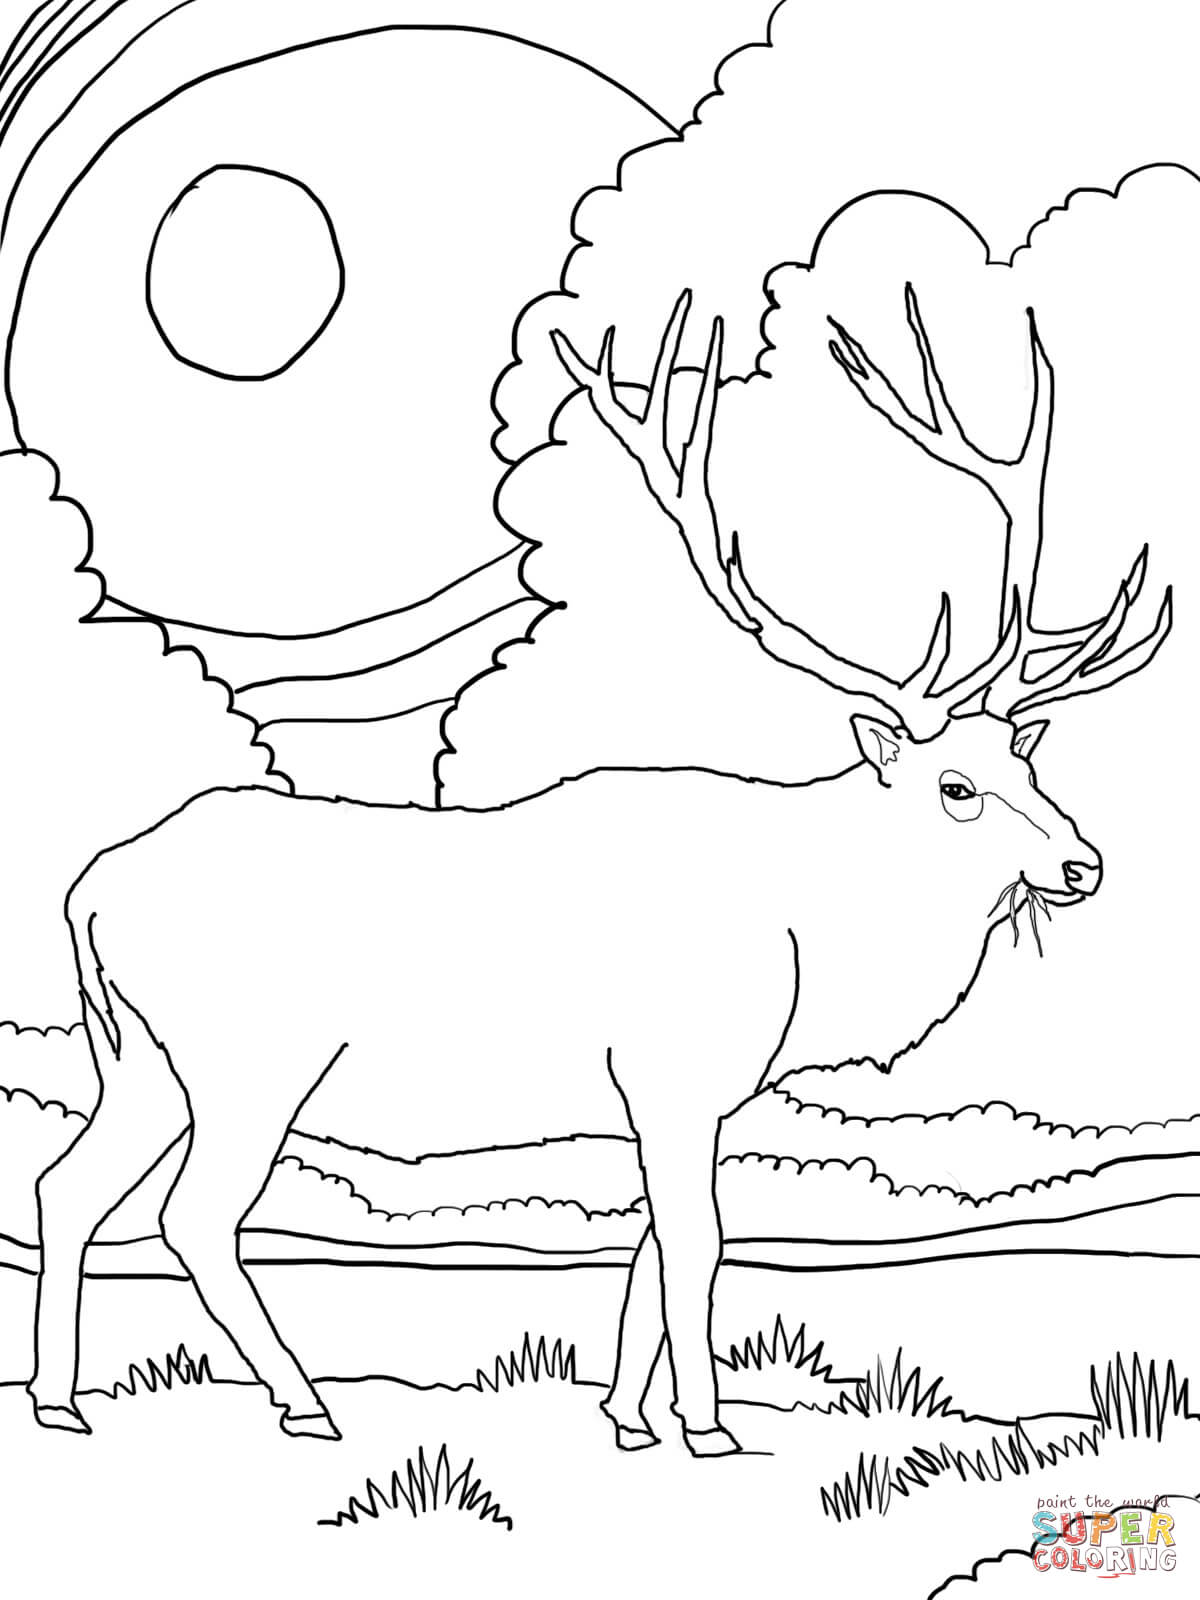 elk pictures to color elk coloring download elk coloring for free 2019 elk to pictures color